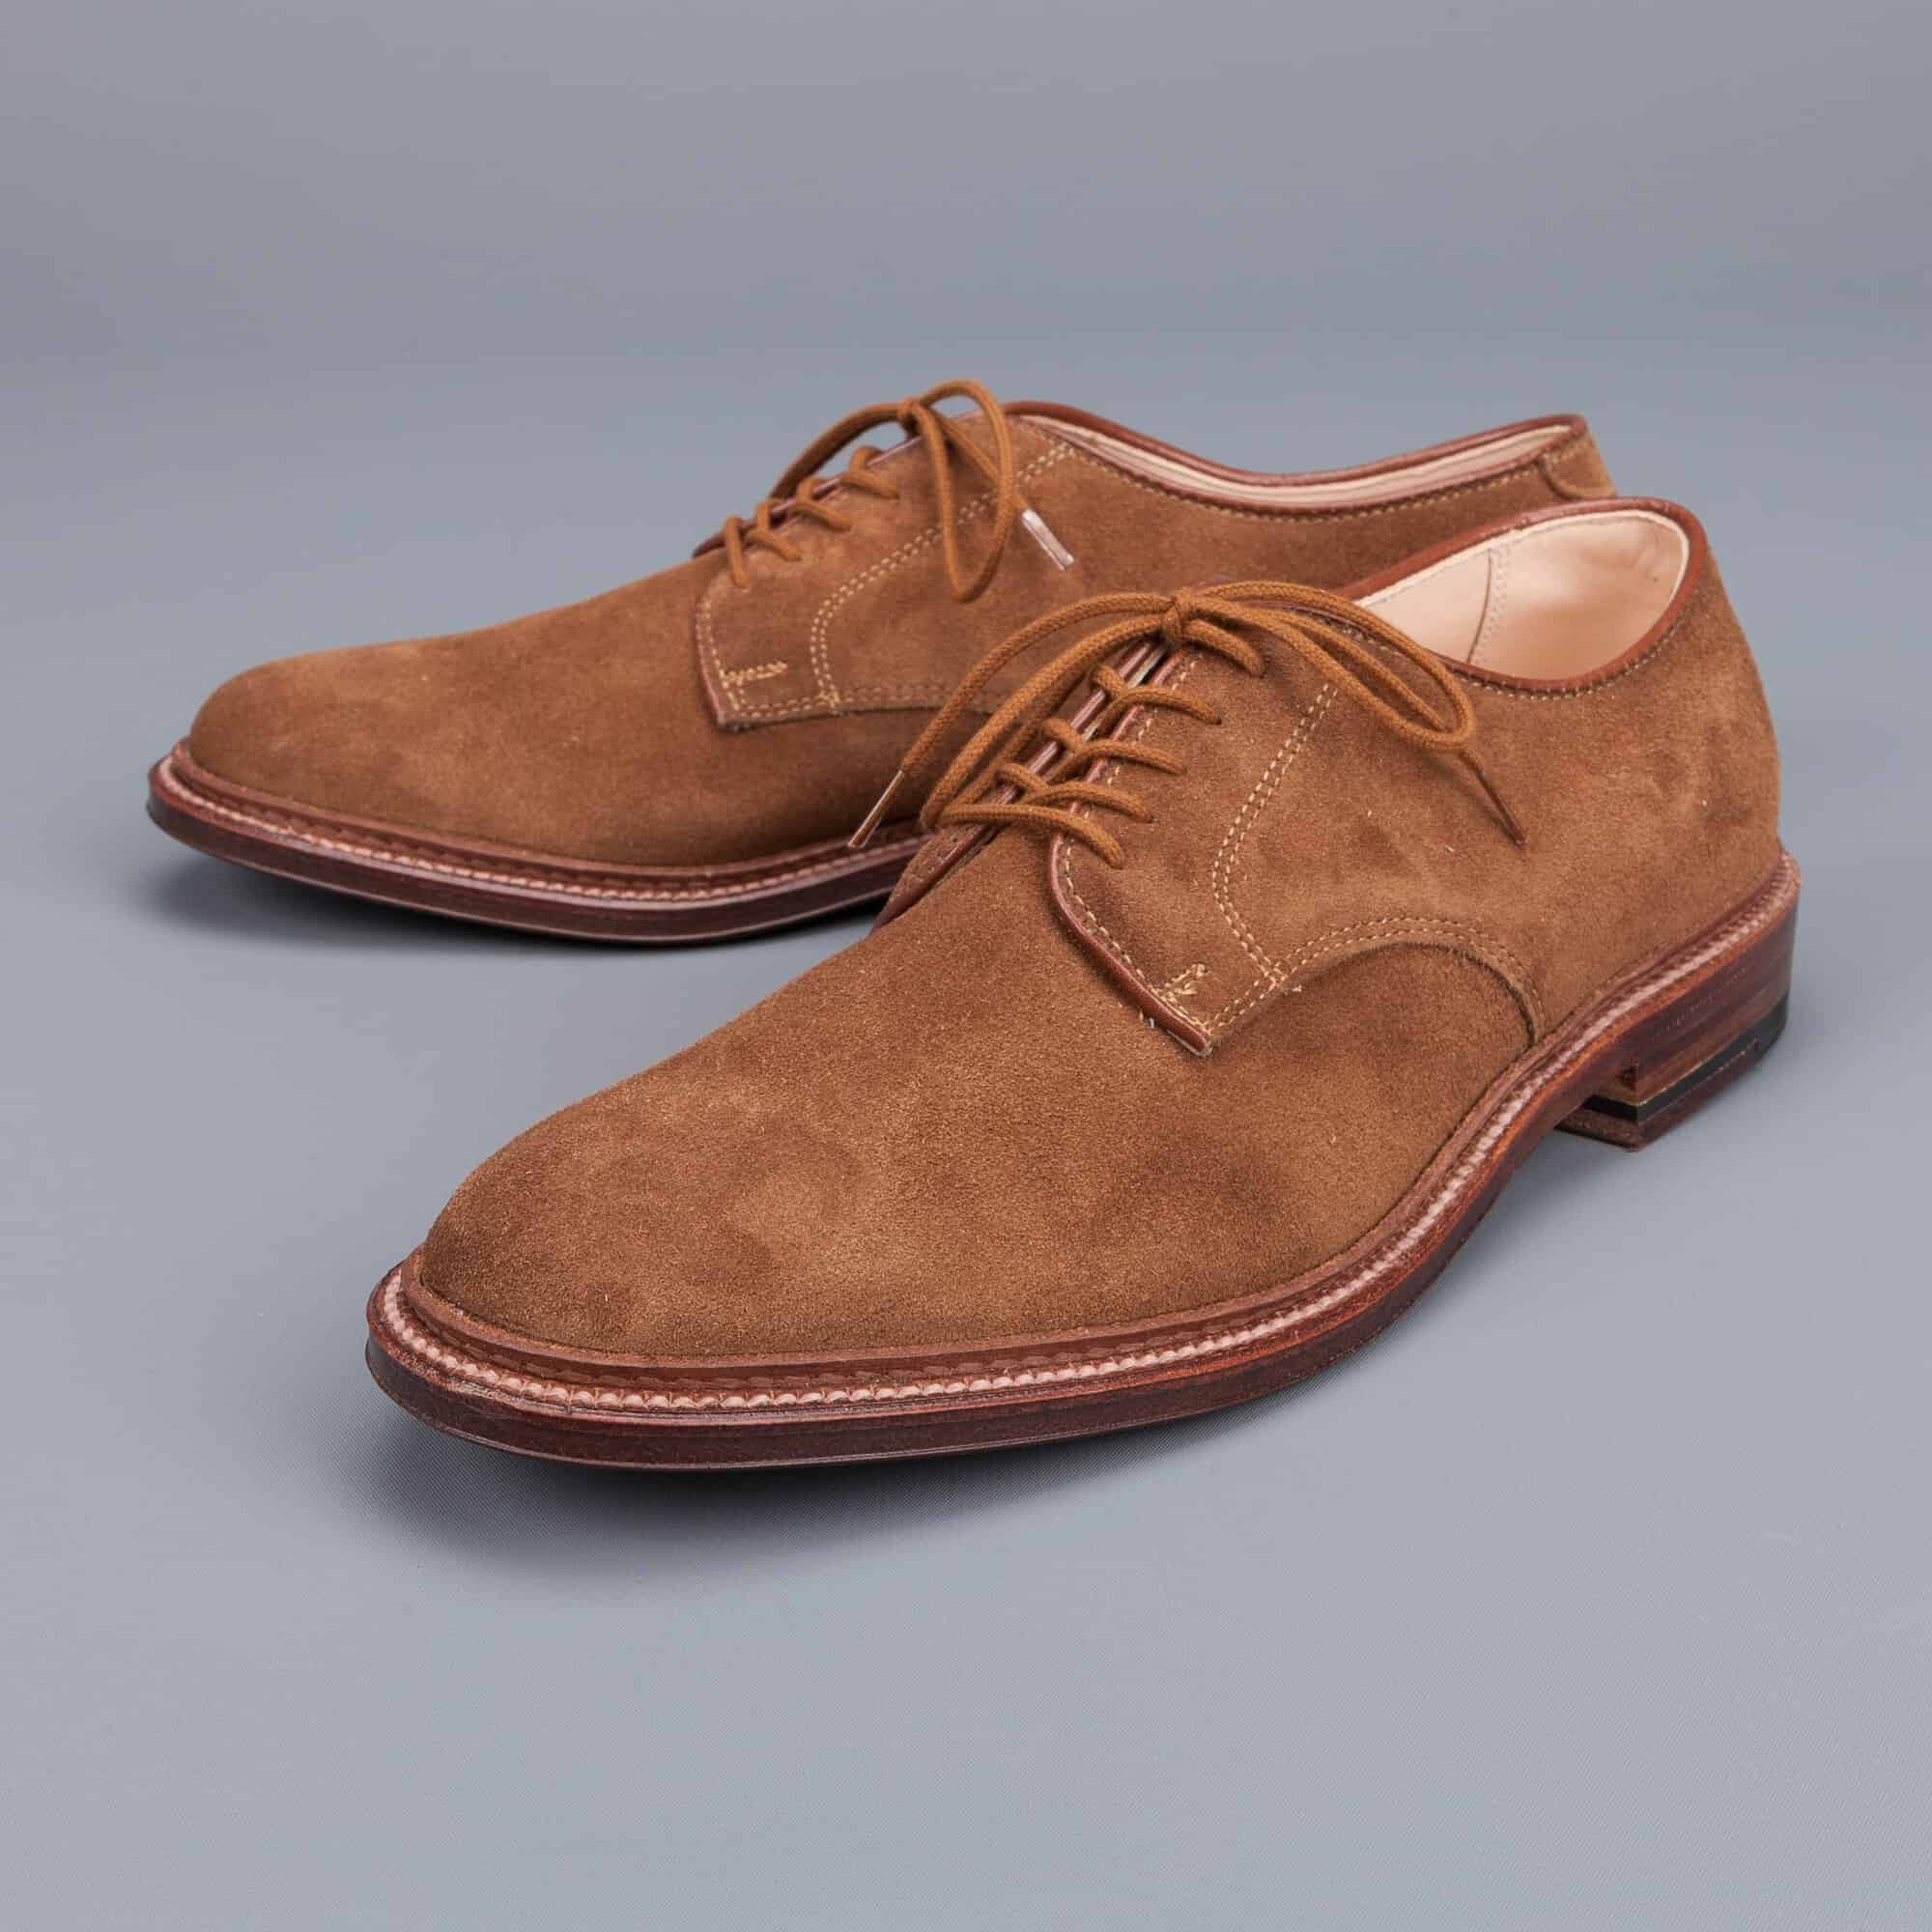 In depth – Properties of unlined shoes –